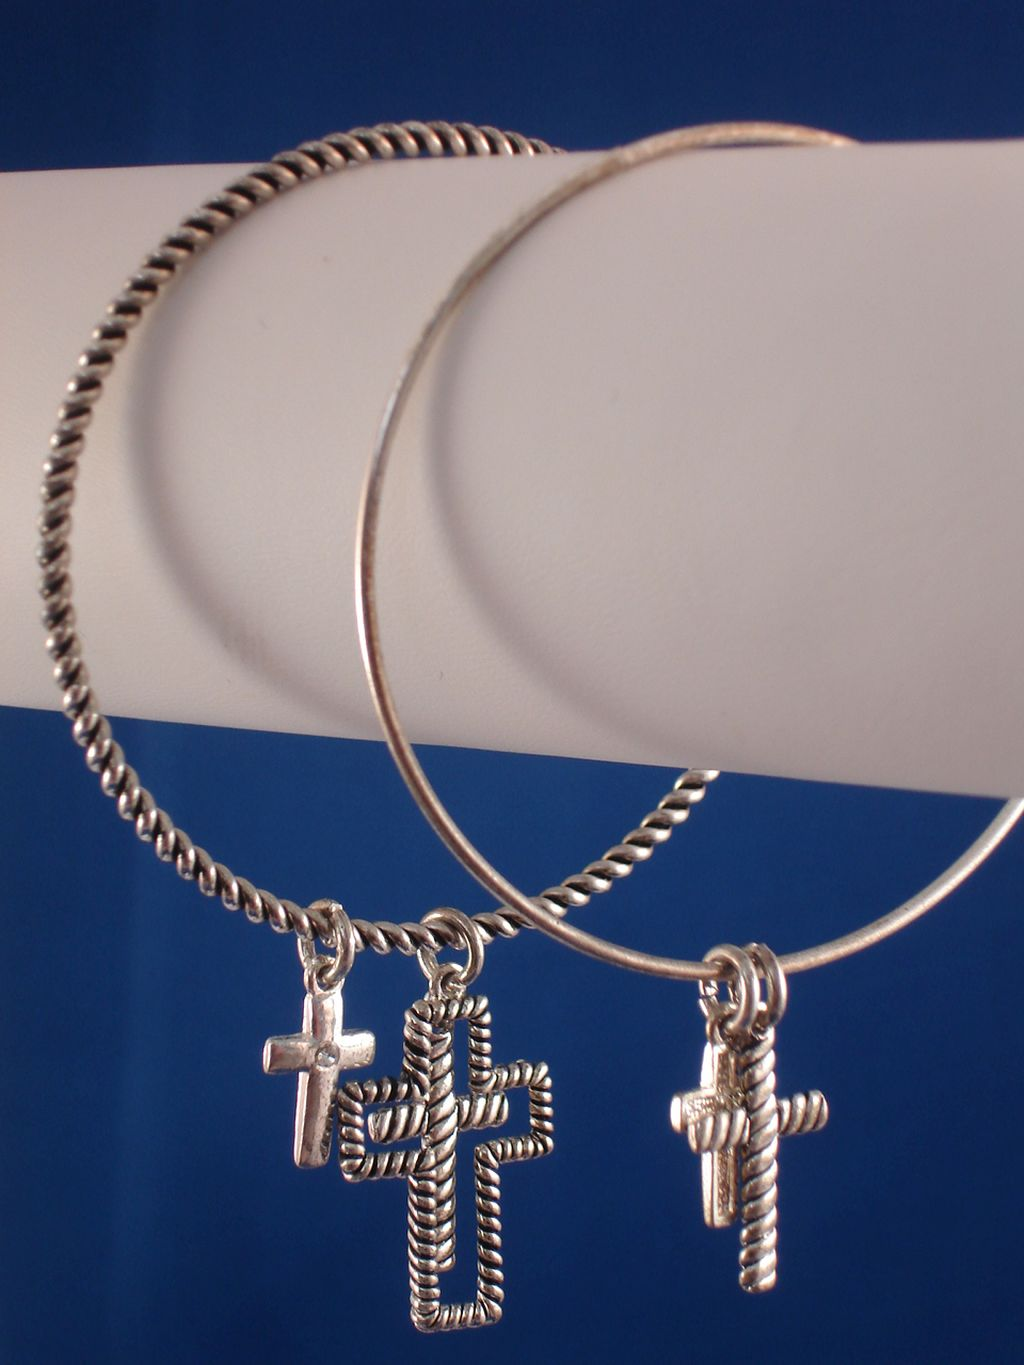 Christian Faith Inspired, Set of Two Bangle Bracelets, Cross Charms, Sterling Silver Plated